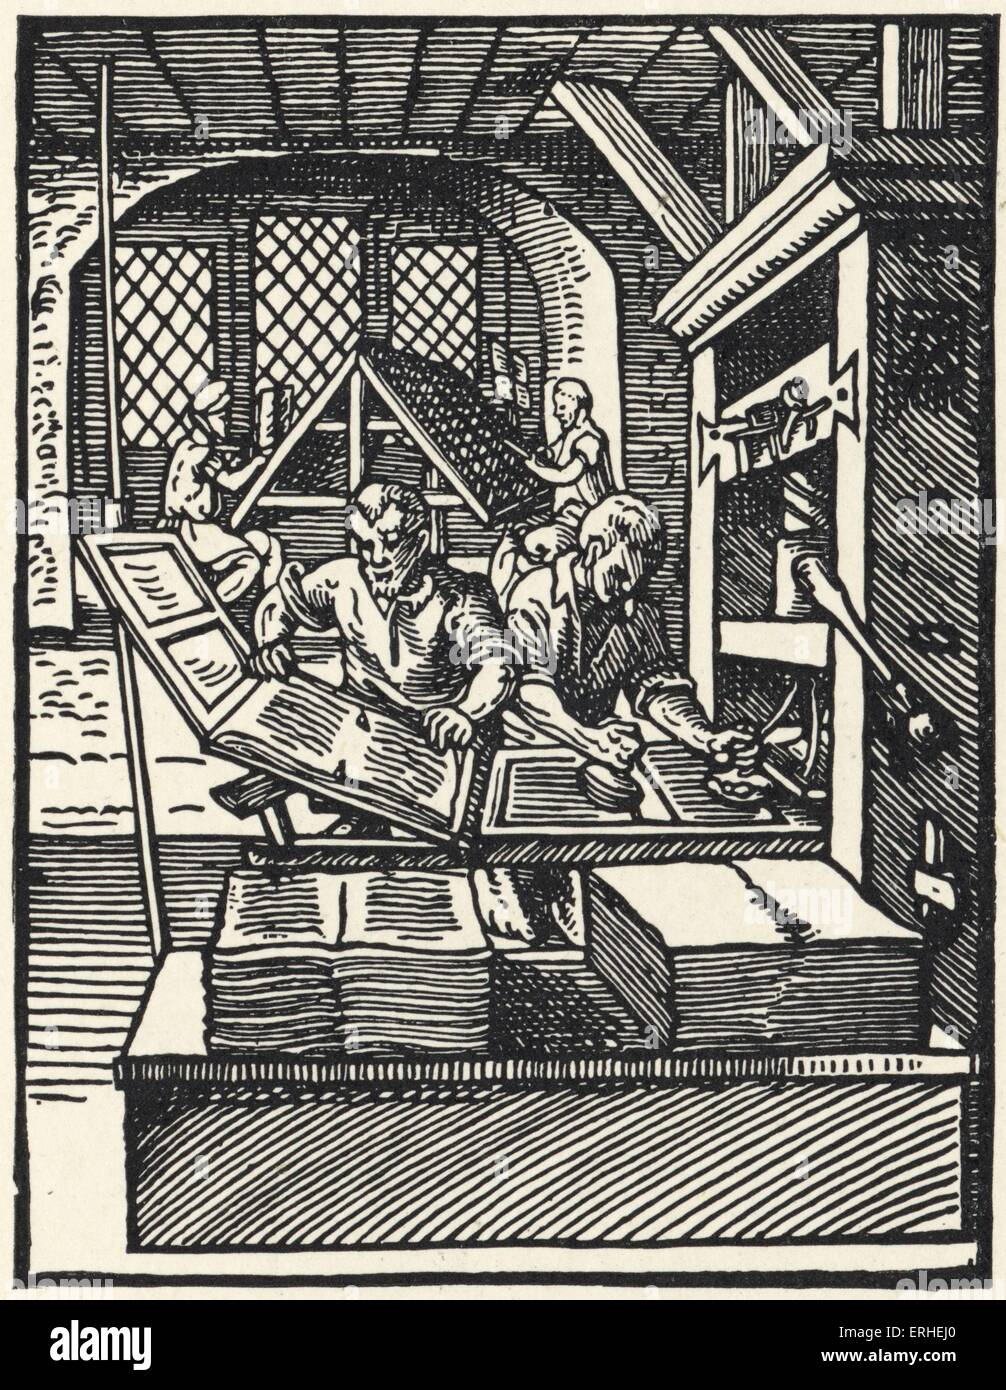 Printing in the 15th century - illustration from 'Stunde und Handwerker' by Jobst Amman. Early book. Craft. - Stock Image